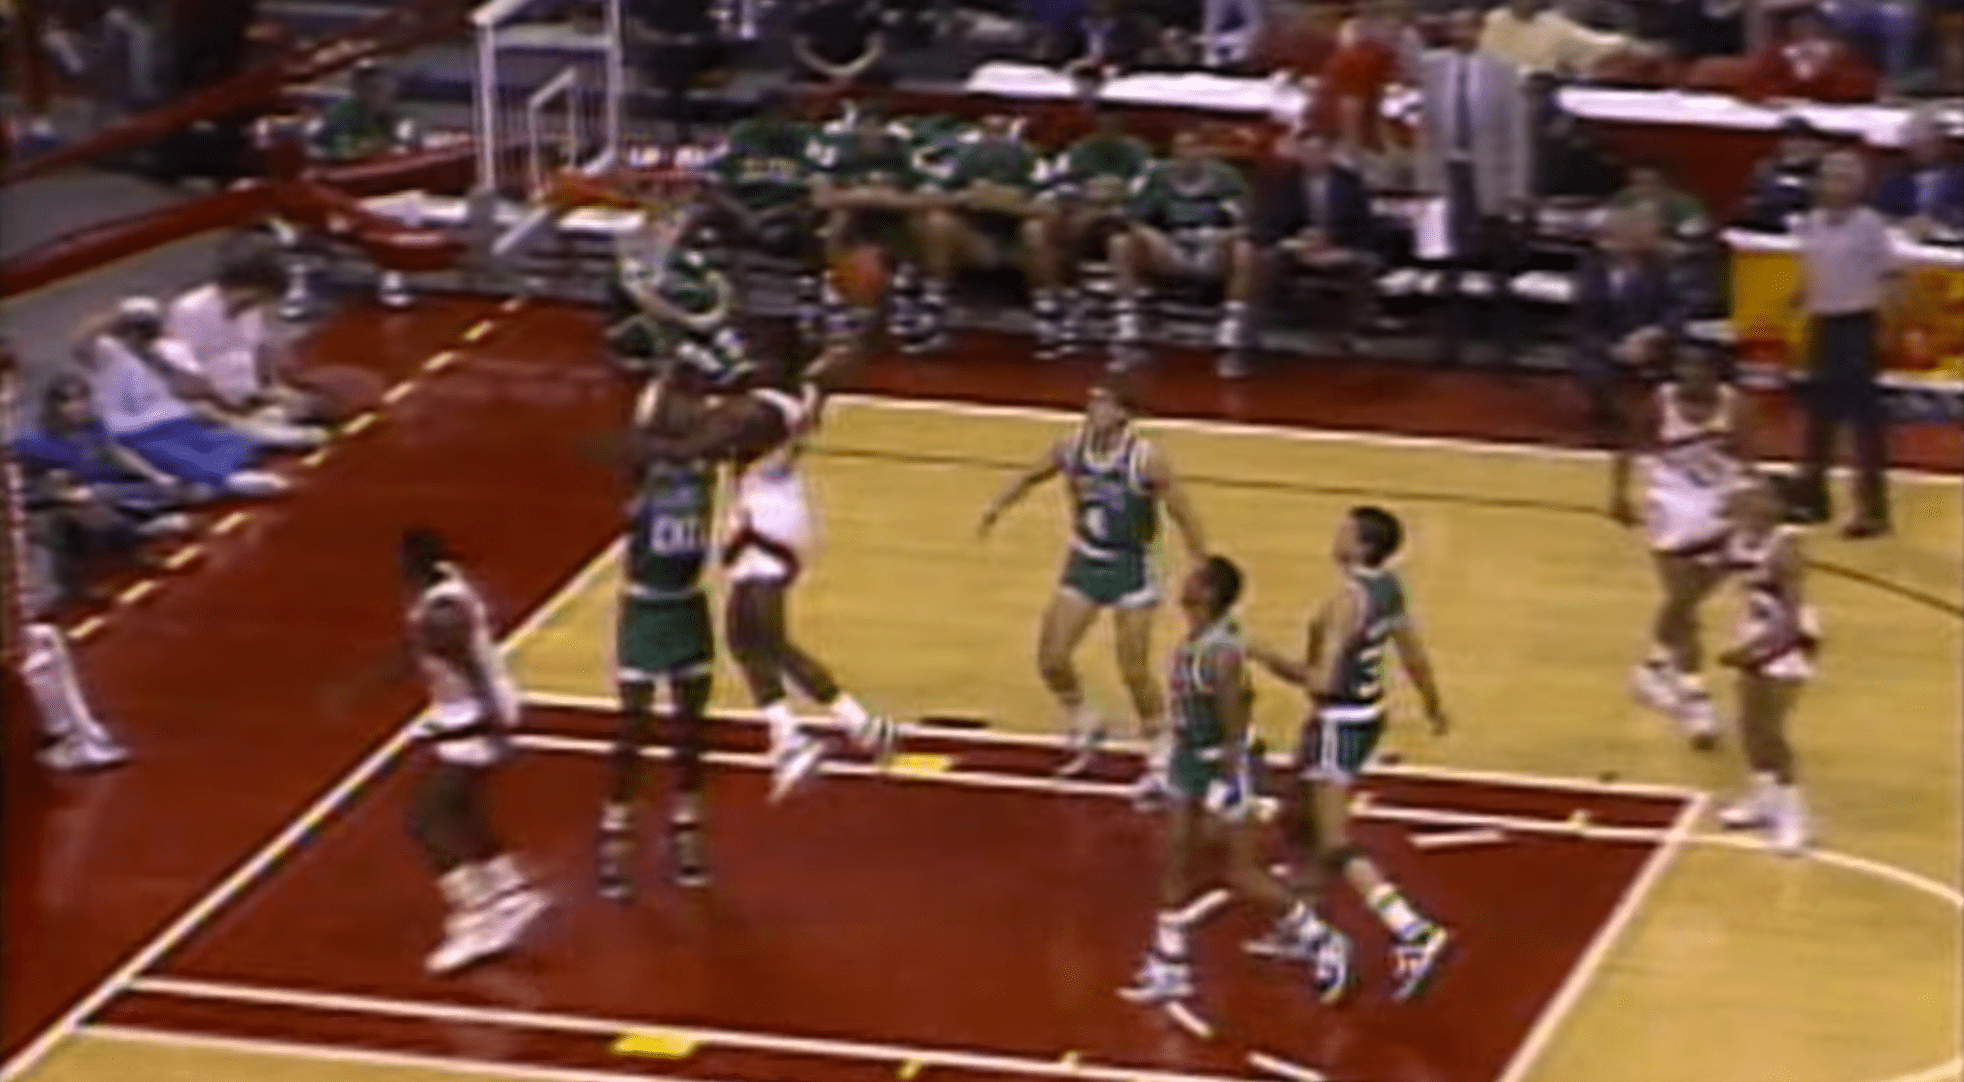 Dominique Wilkins aka. The Human Highlight Film